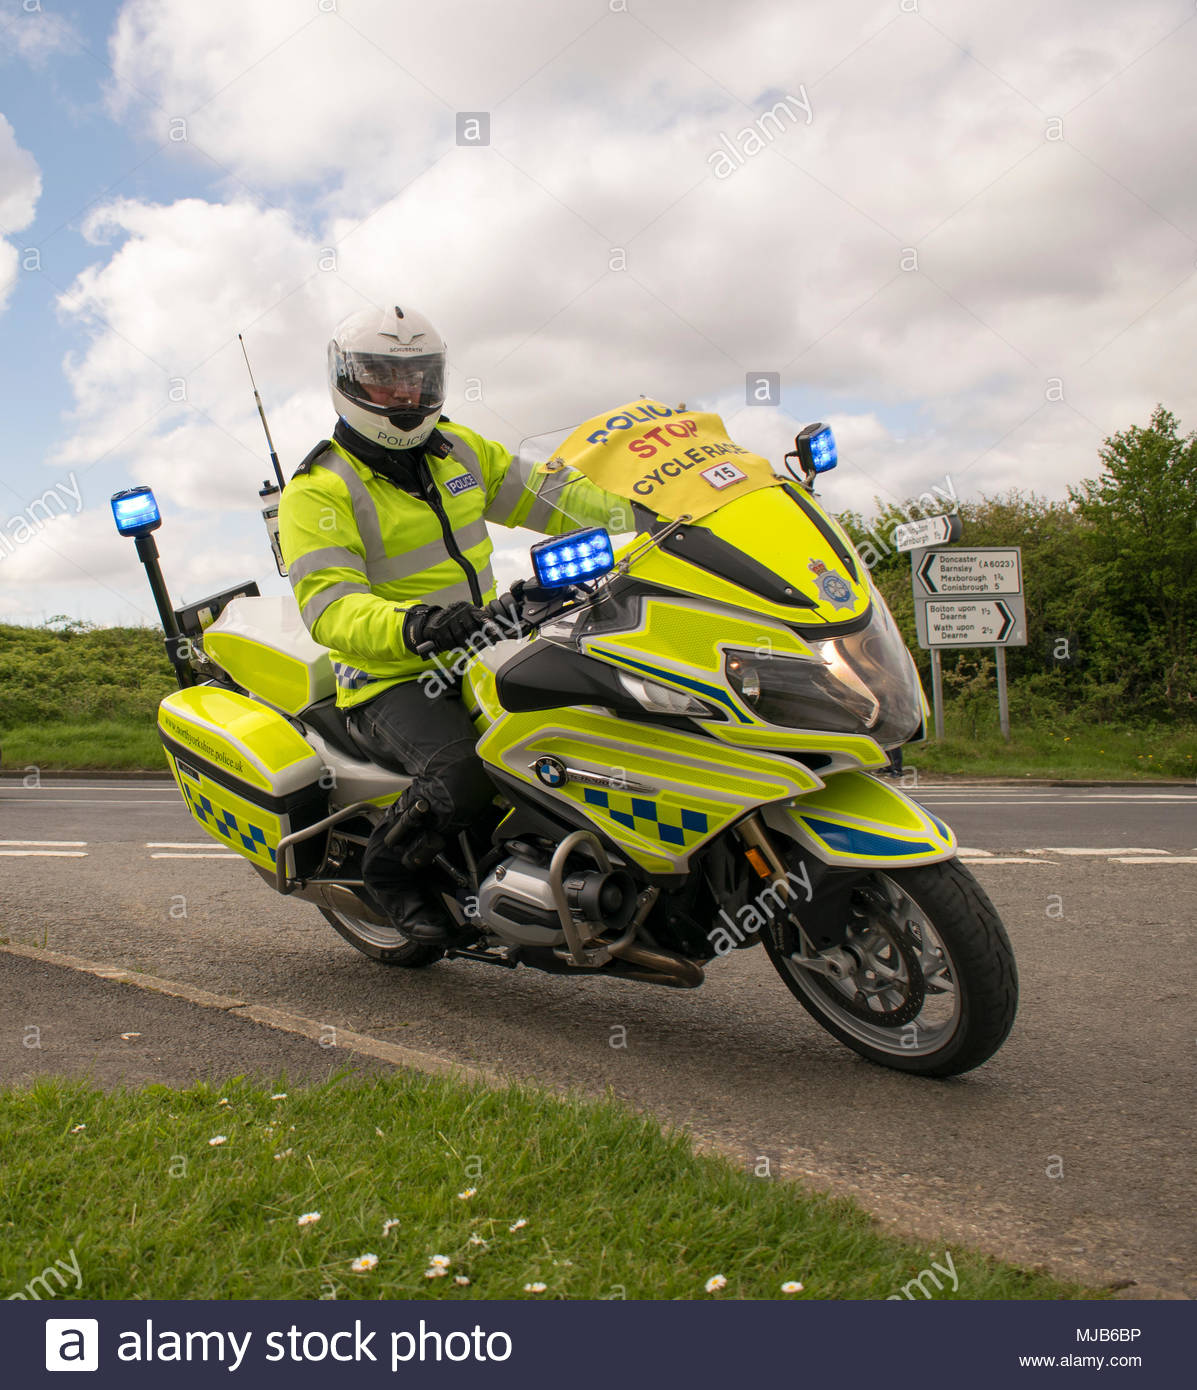 British Police Motorcycle Traffic Officer With The Tour De Yorkshire 2018 Stage 2 Women's Race, At Adwick upon Dearne, Mexborough, Doncaster, South Yo - Stock Image